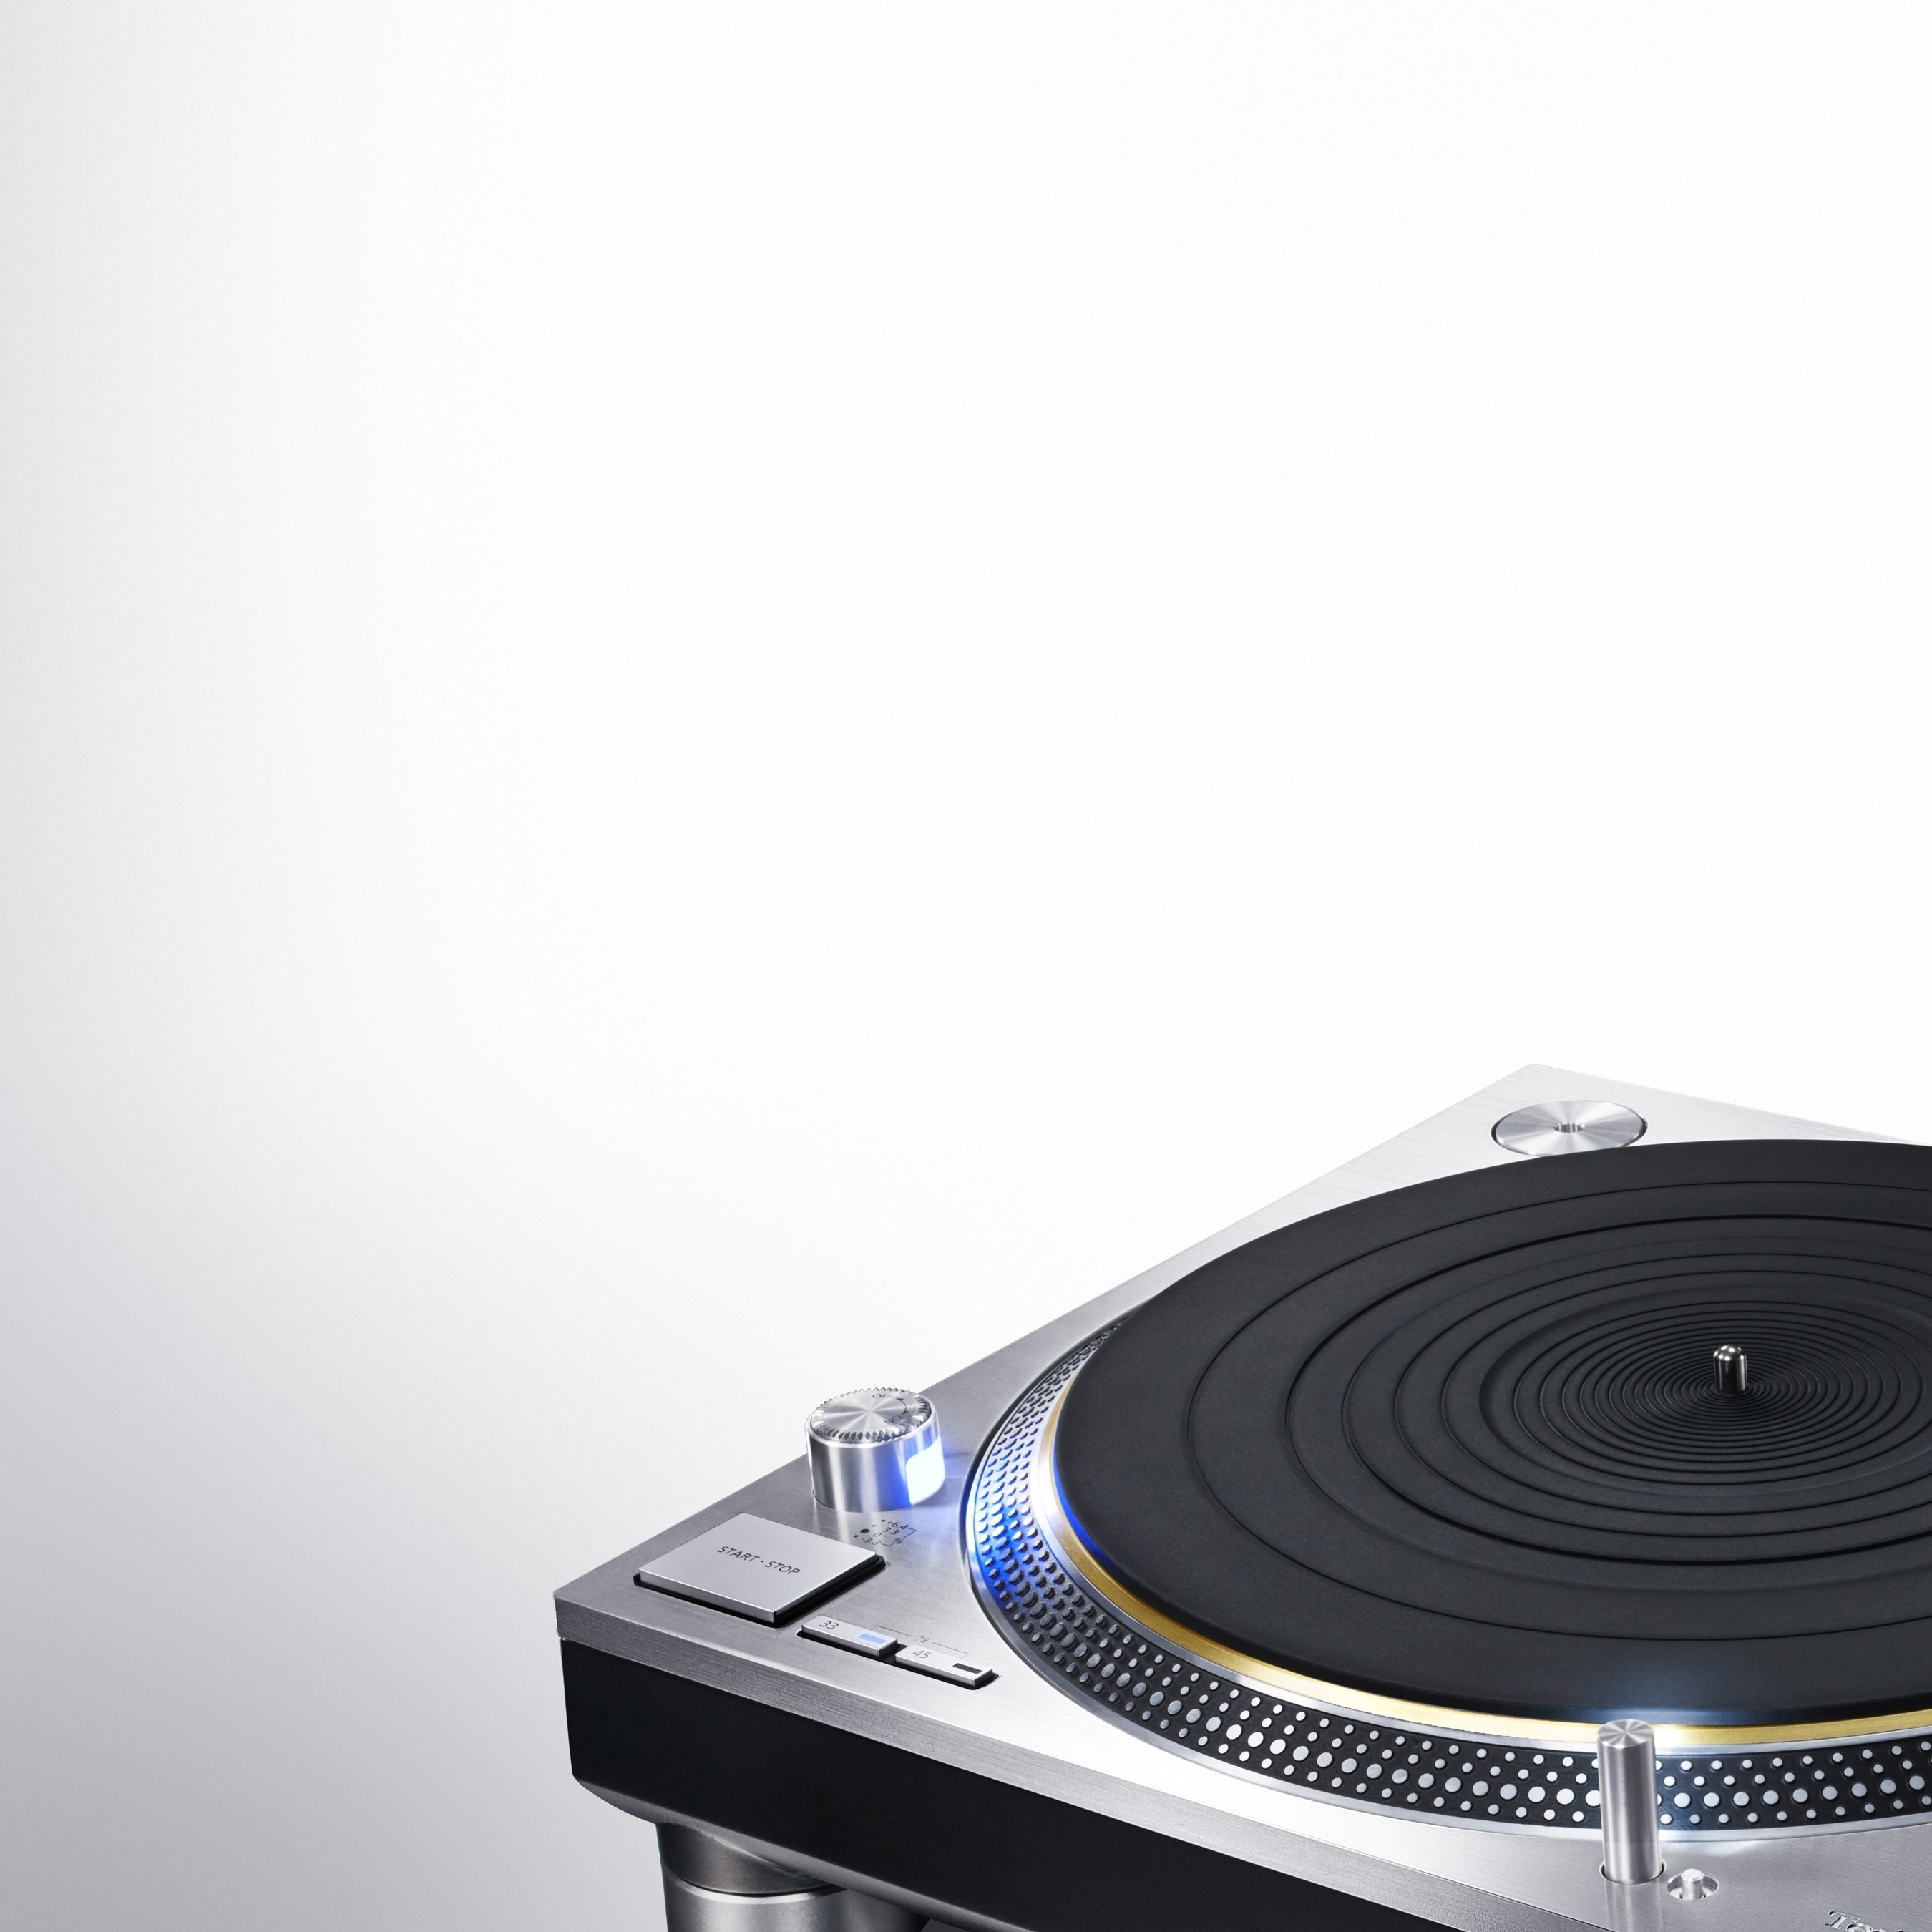 Technics Redefines the Direct-Drive Turntable with the Launch of Next-Generation Reference Model